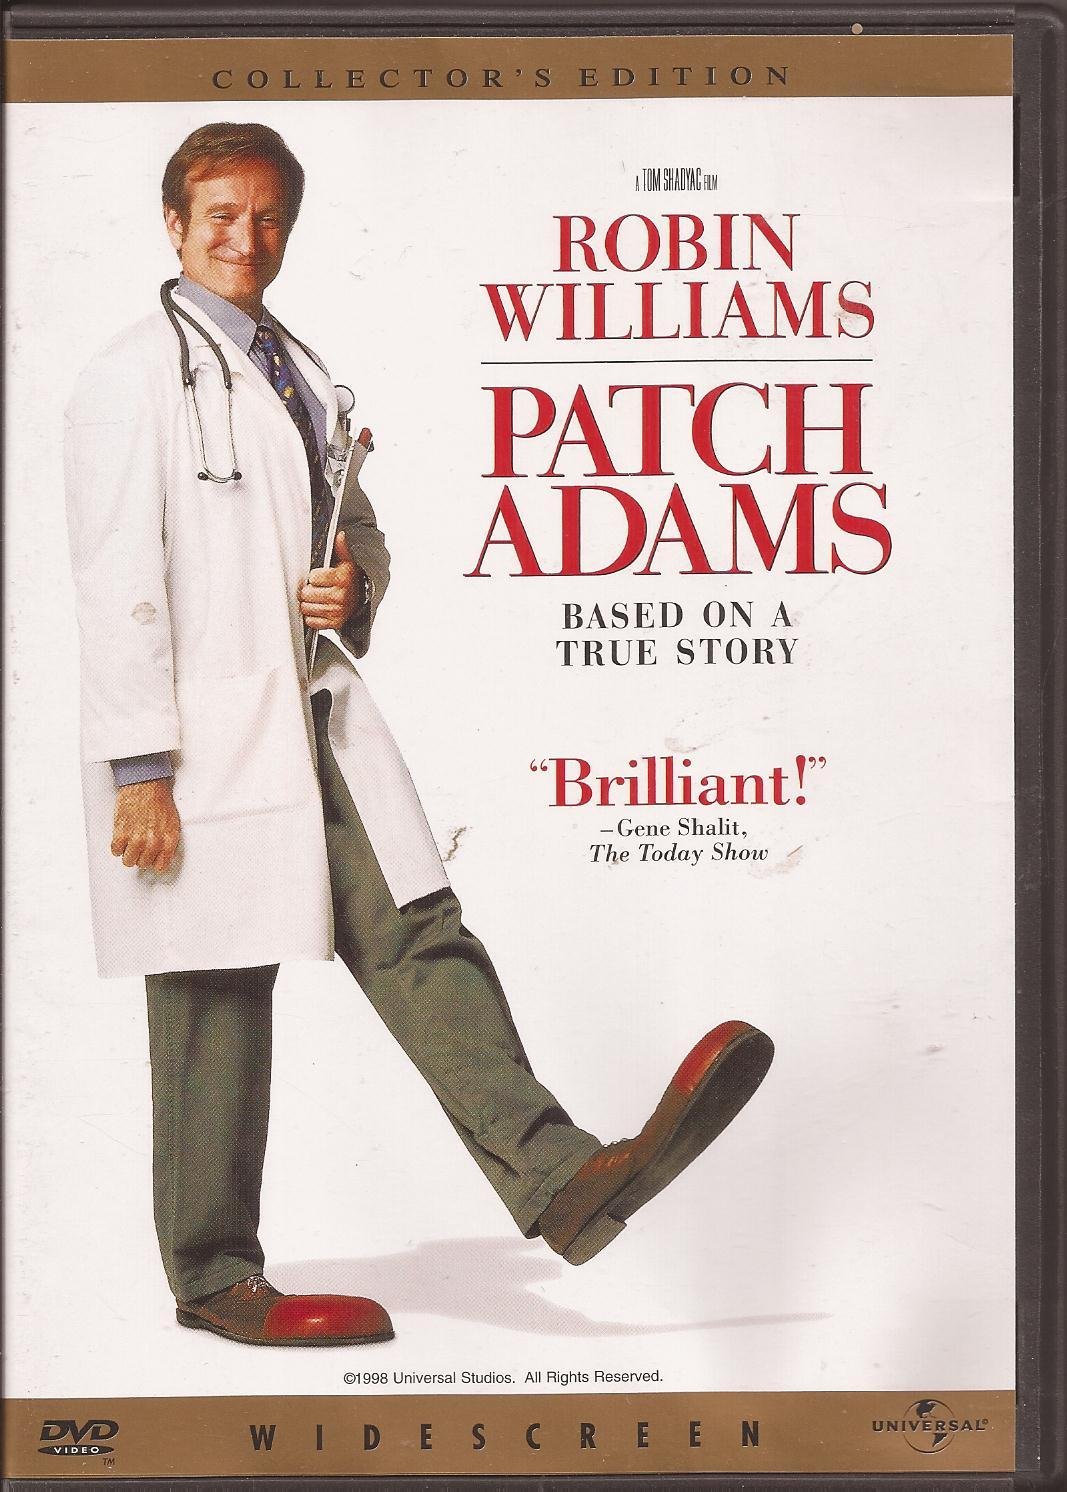 Watching Patch Adams on DVD